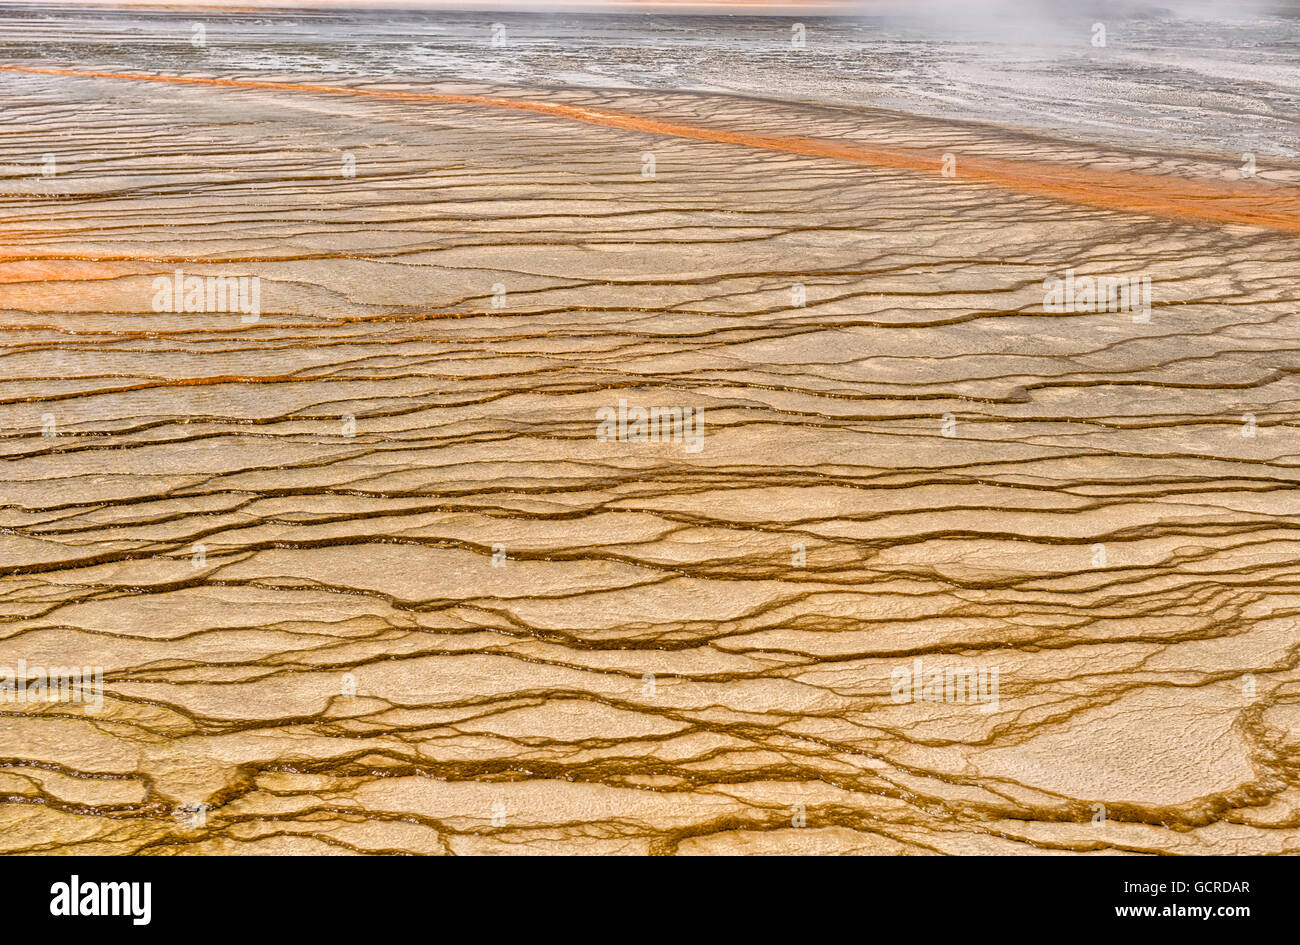 Colorful algea patterns surrounding the Grand Prismatic Spring, Yellowstone National Park - Stock Image